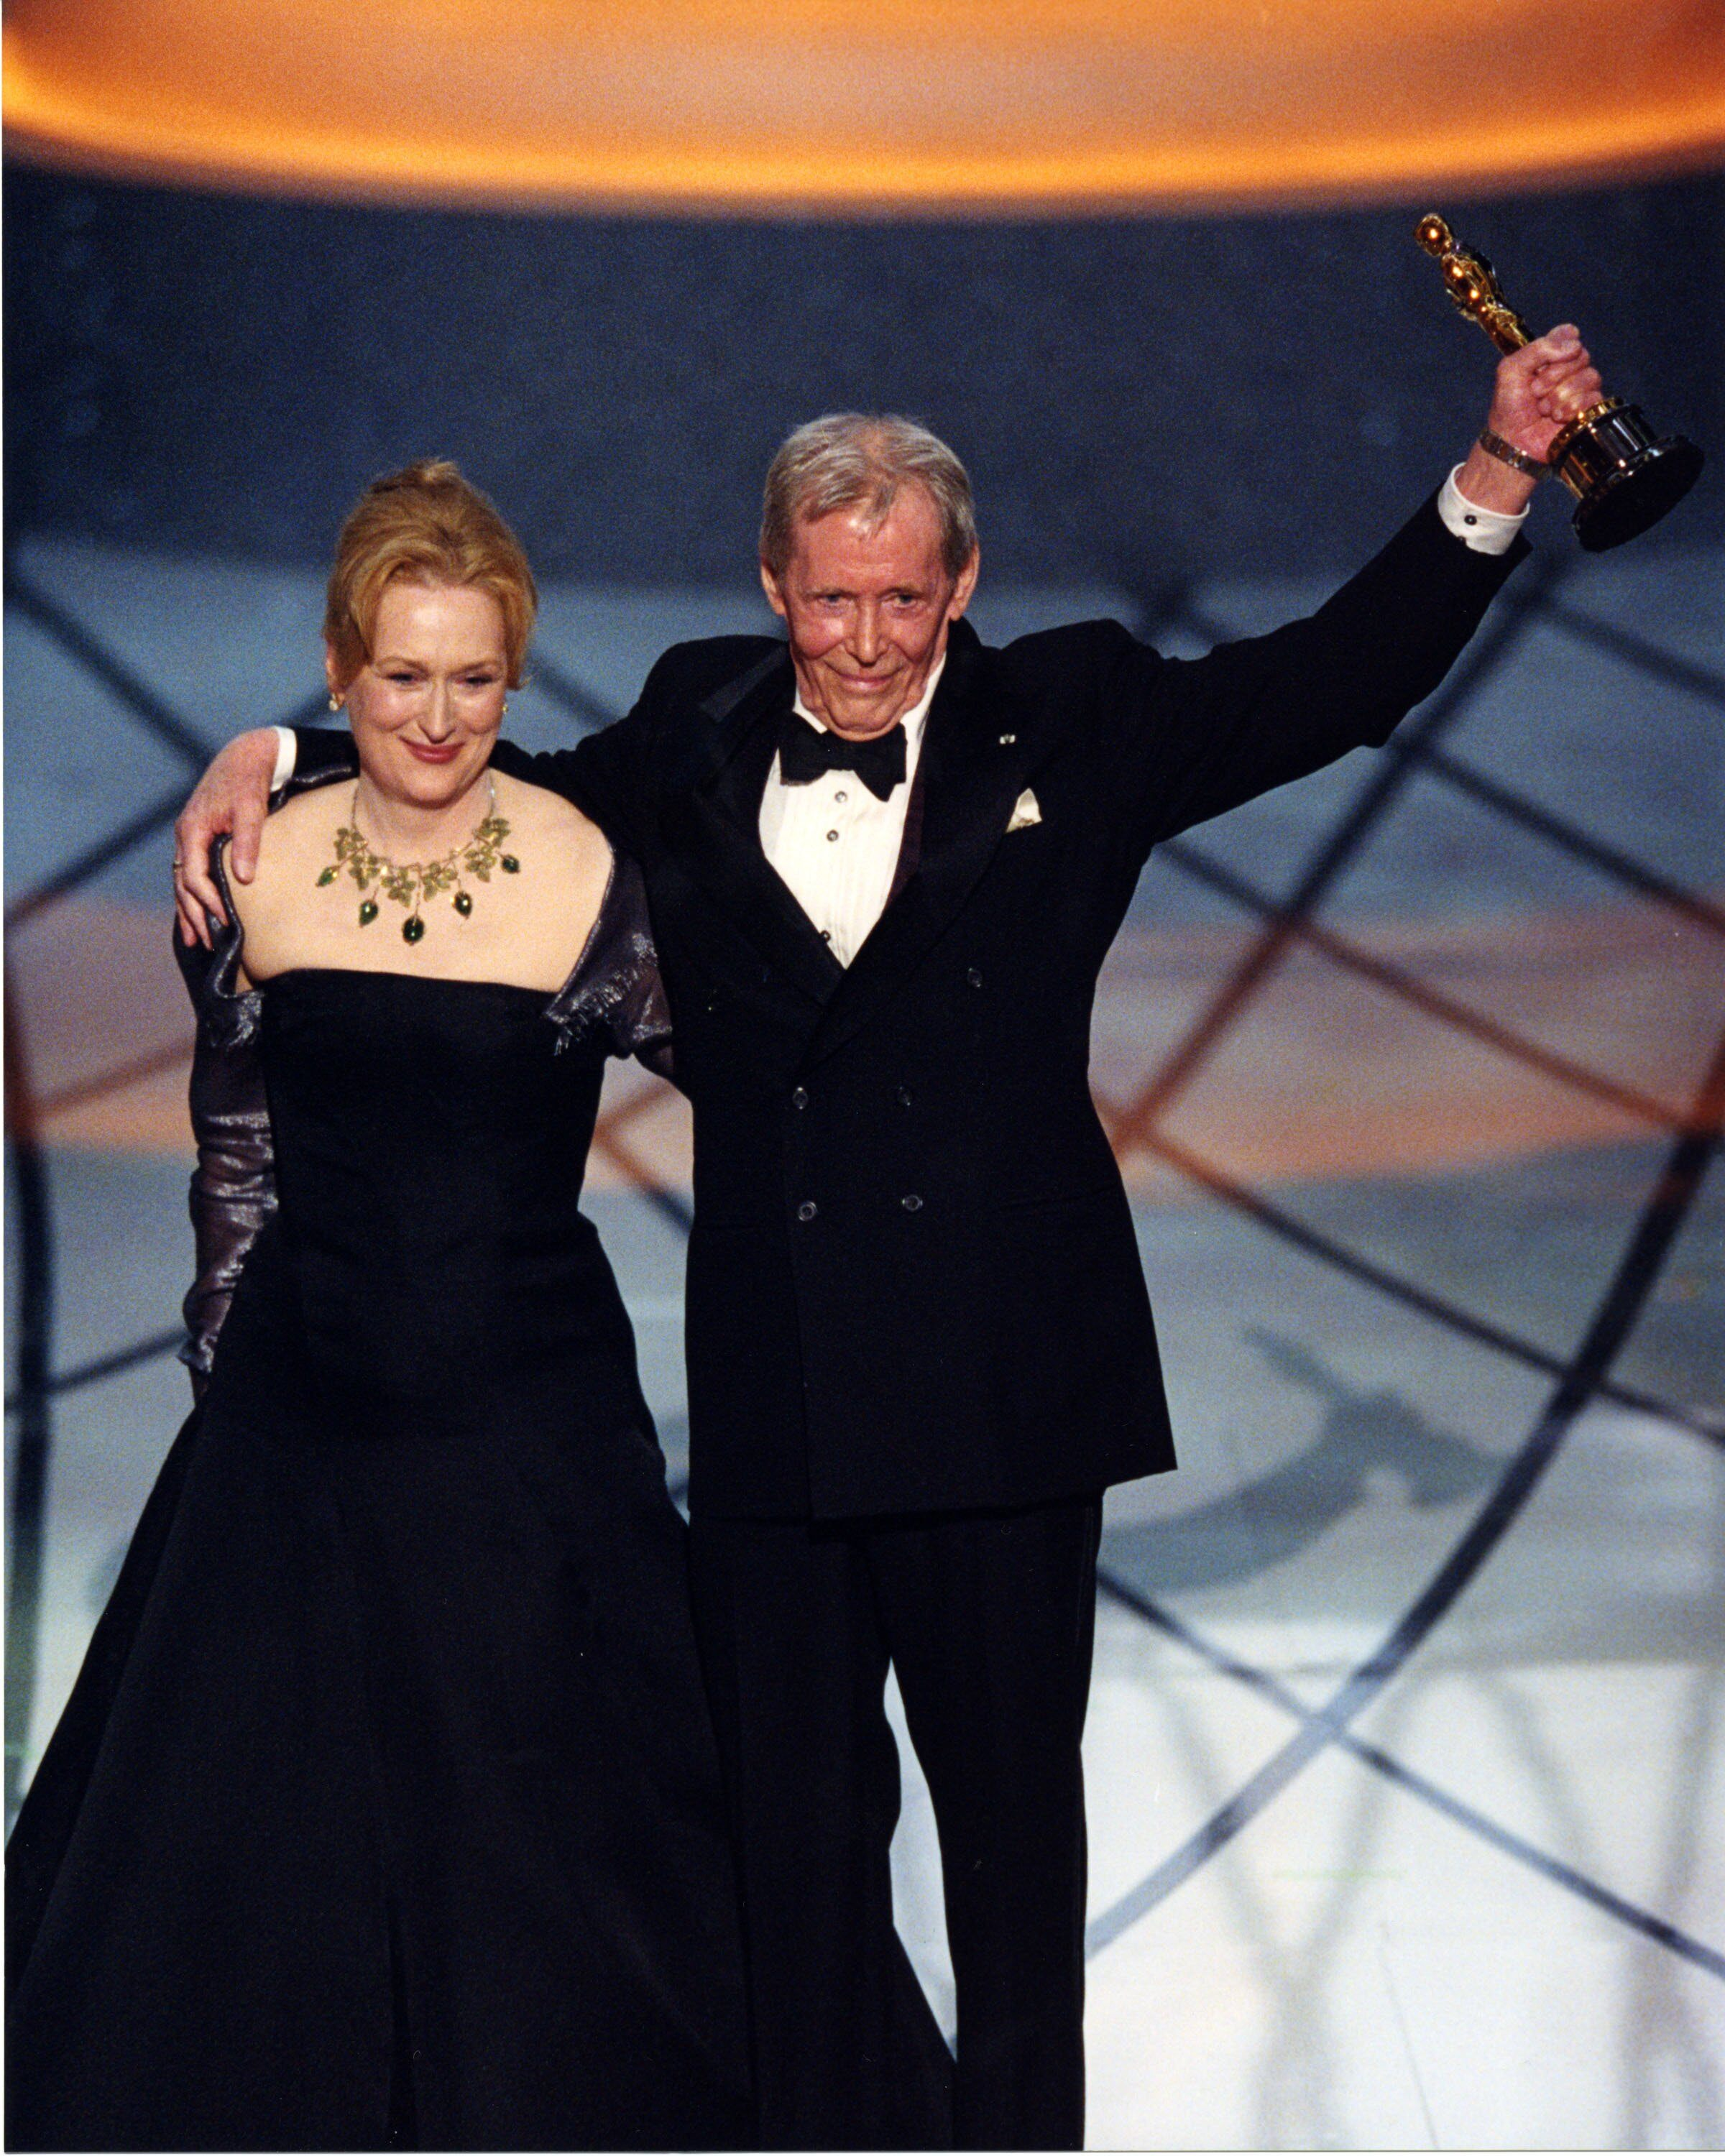 Honorary Award winner Peter O'Toole with presenter Meryl Streep.